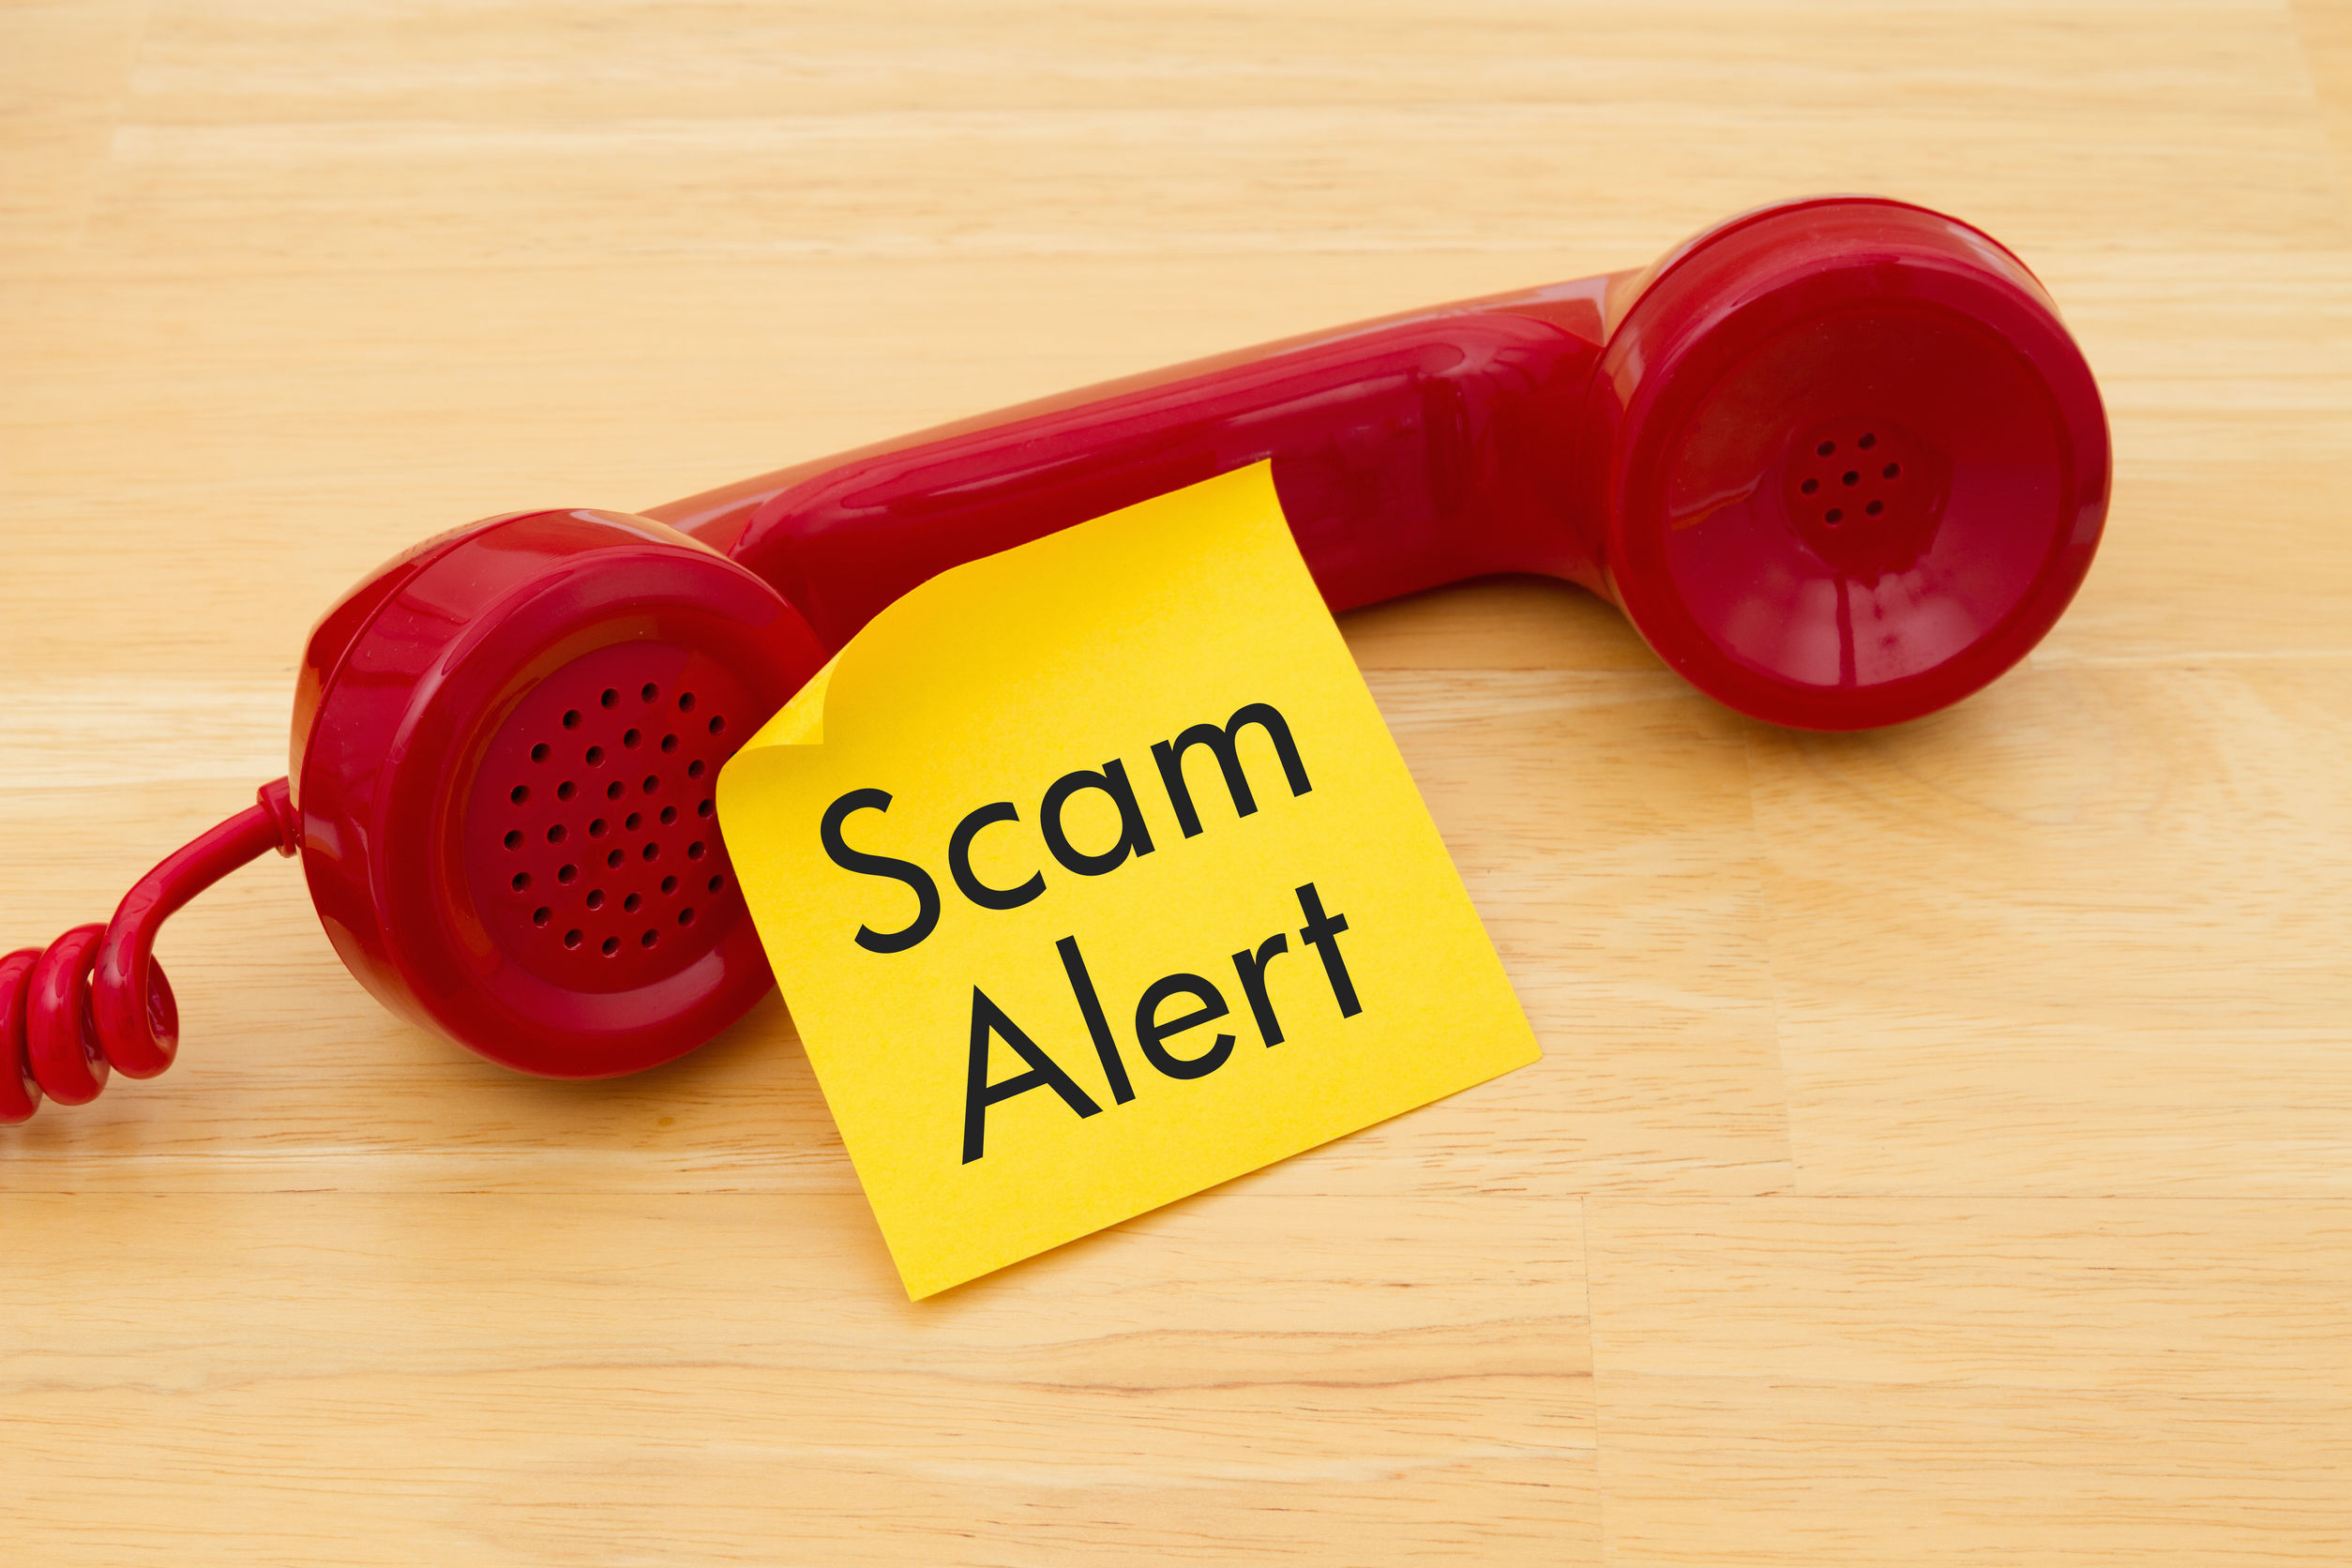 Eversource and PUC Warn of Scams